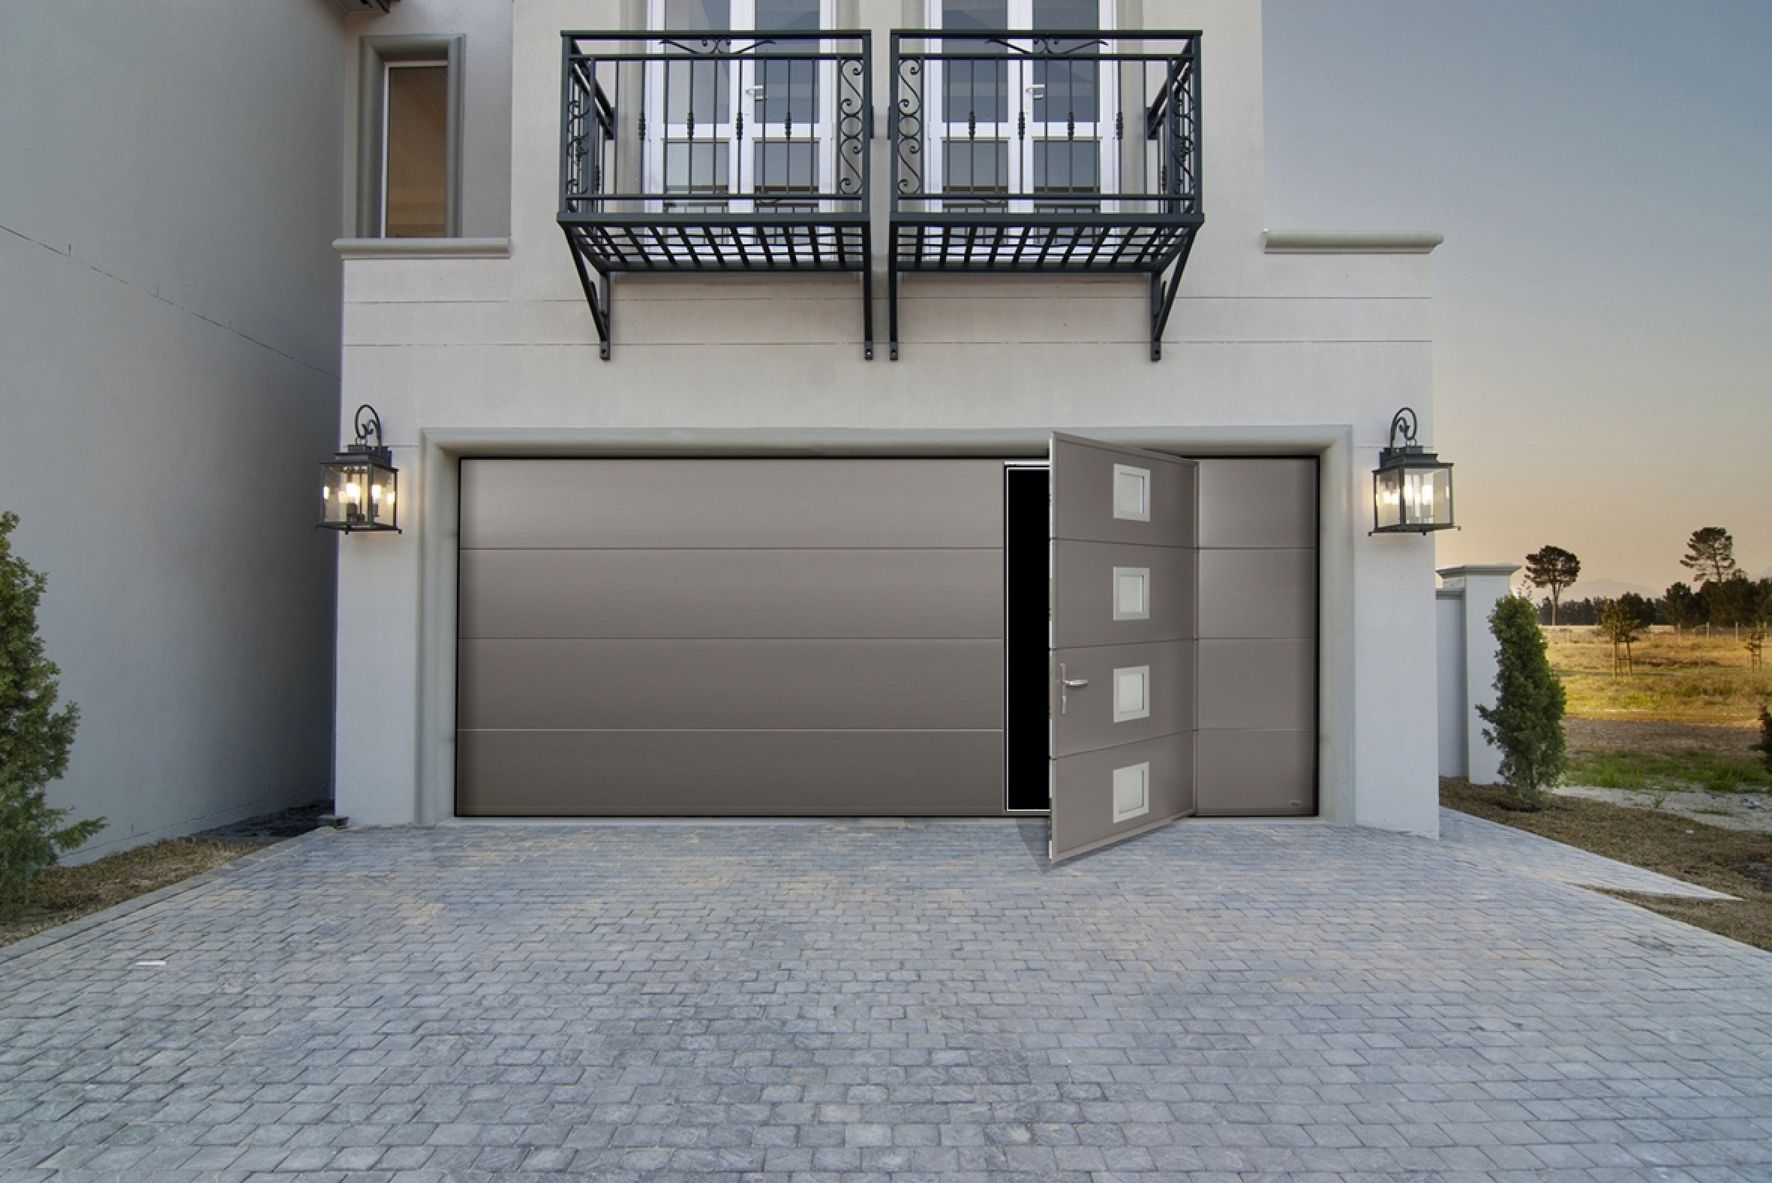 montage porte garage amazing porte garage brico depot charmant notice de montage porte de. Black Bedroom Furniture Sets. Home Design Ideas